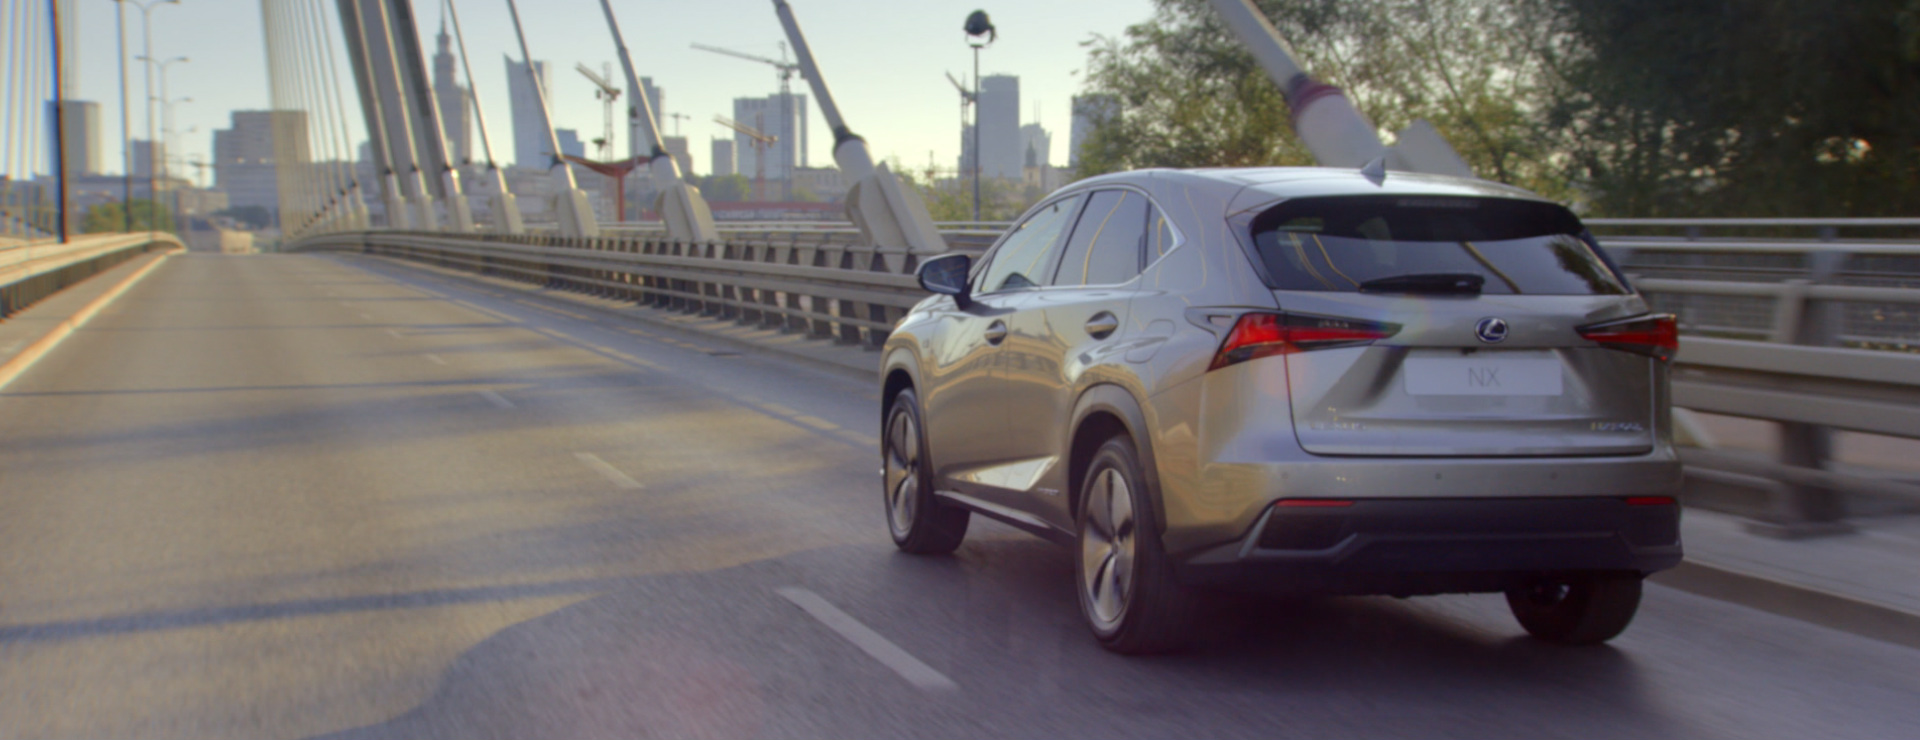 novo lexus nx 300h Video Image